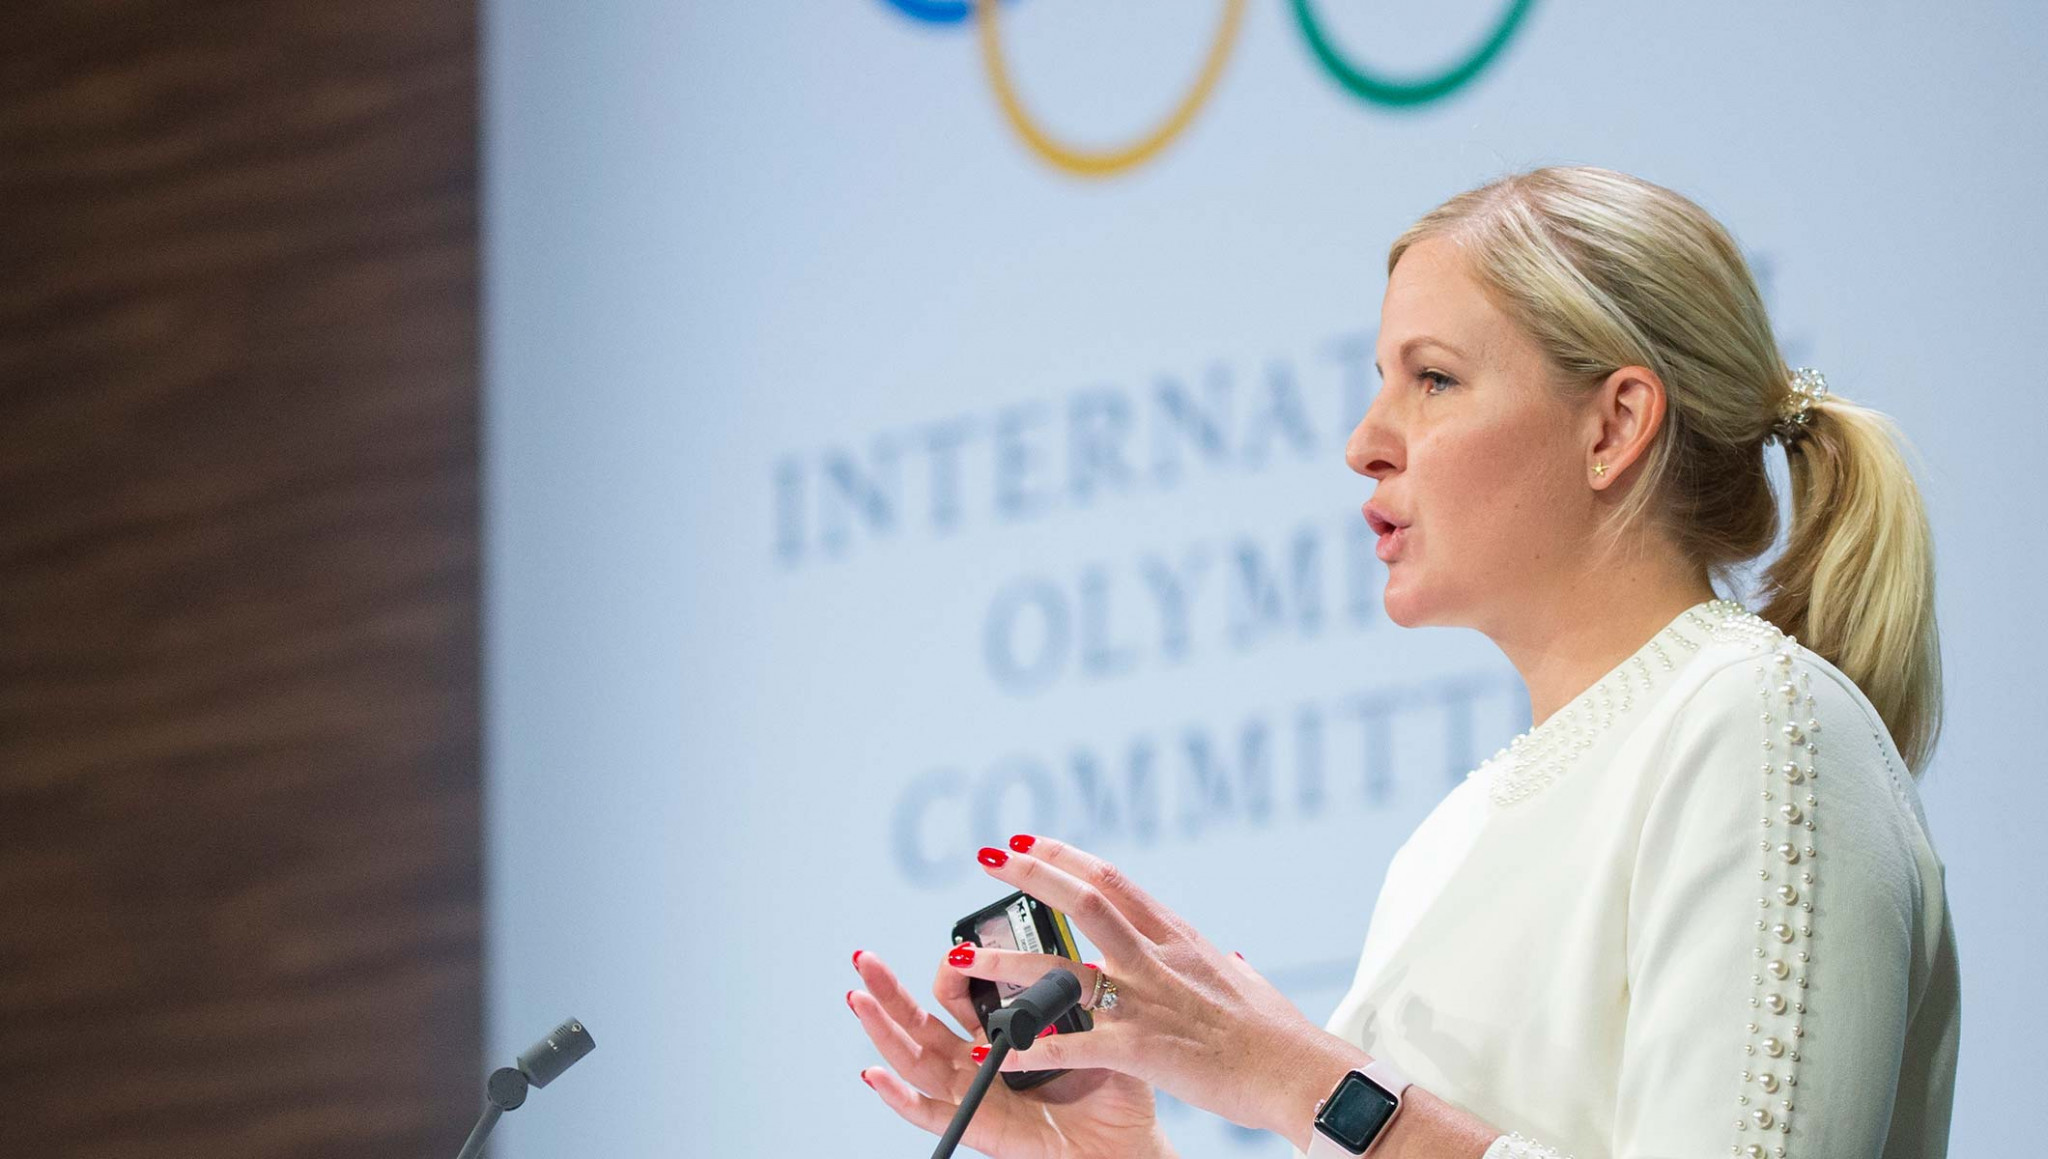 Kirsty Coventry also serves as Zimbabwe's Sports Minister